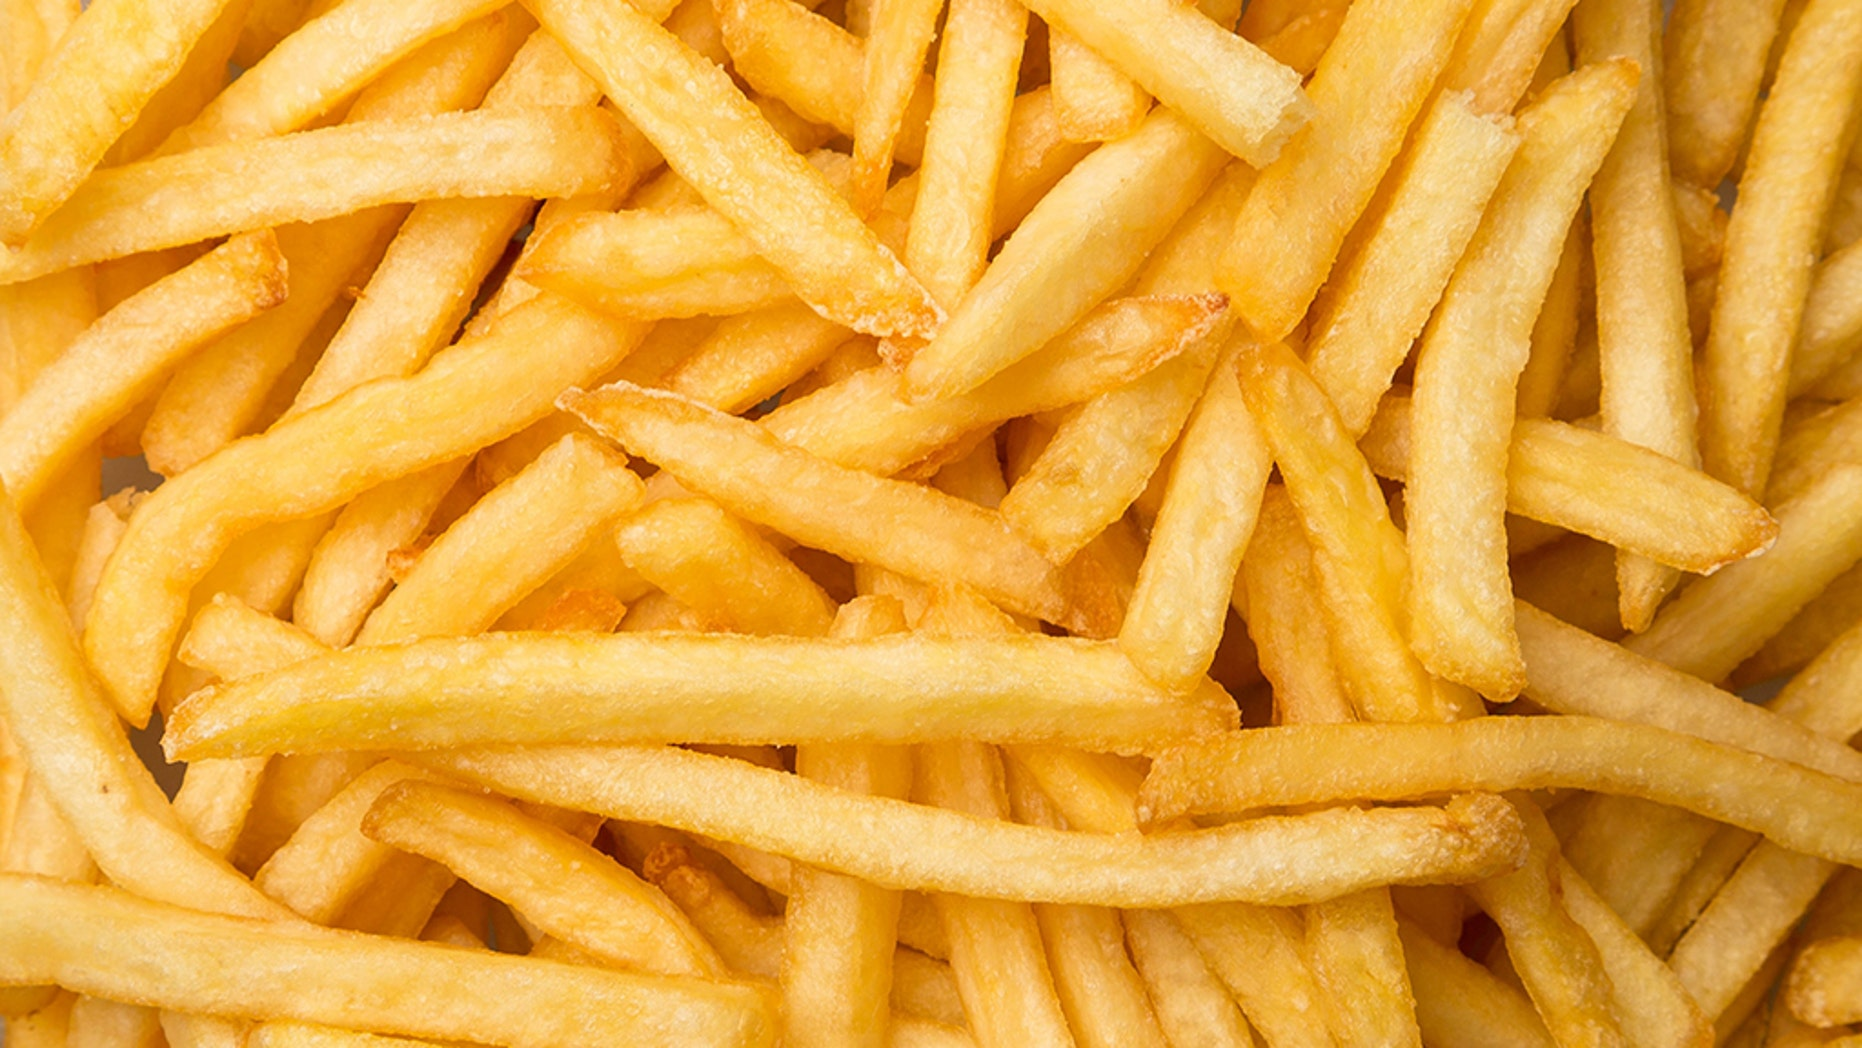 A ranking of the best fast food fries has stirred up some controversy.